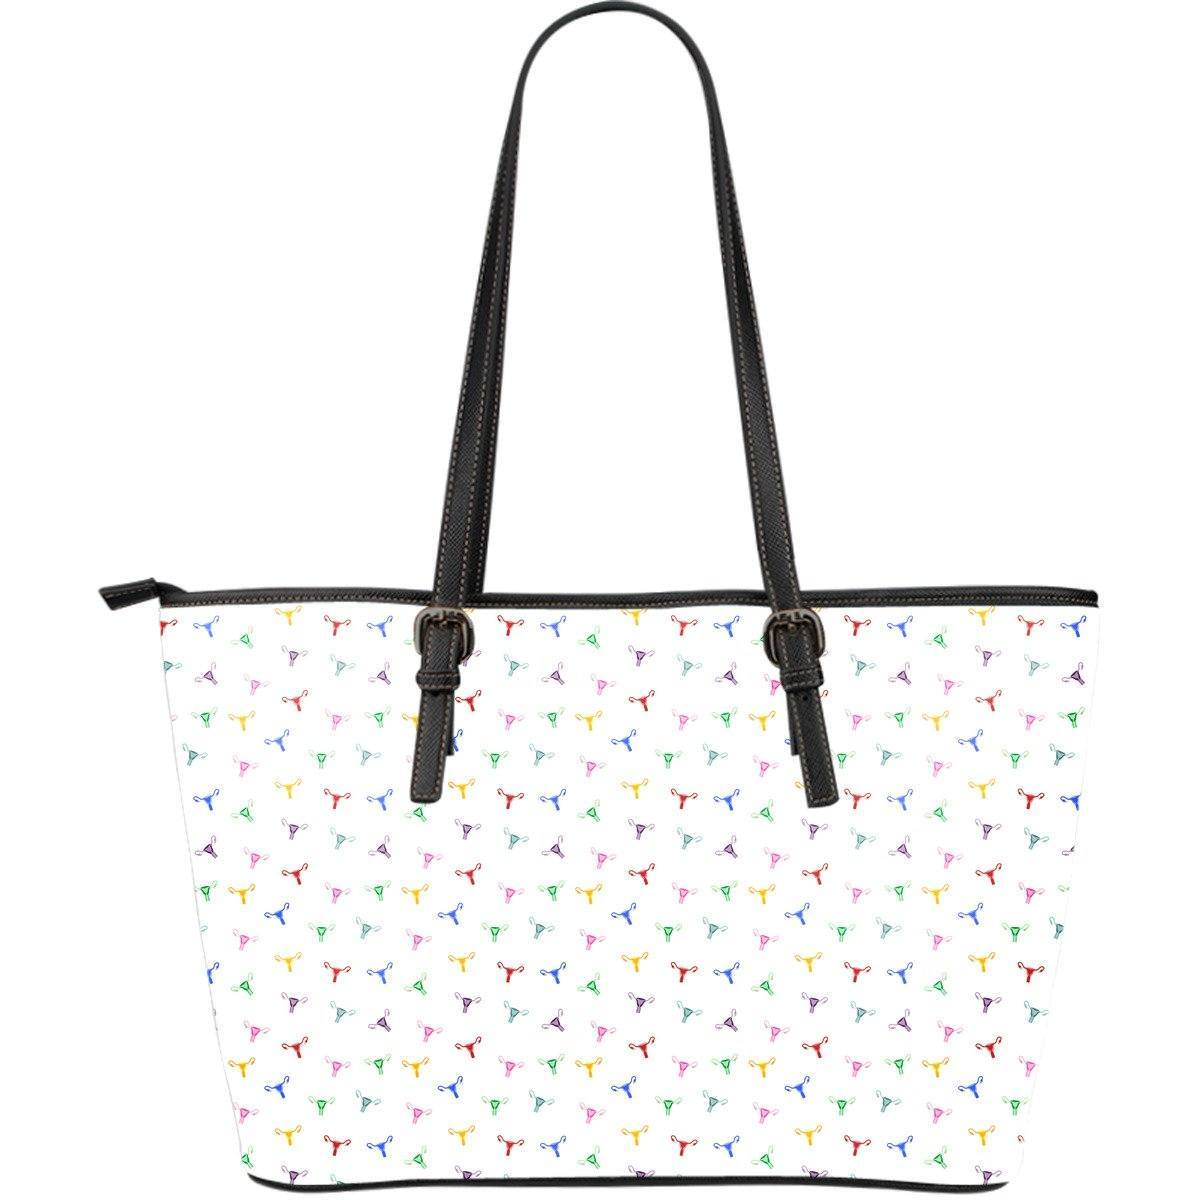 Rainbow Uterus Confetti Vegan Leather Bag